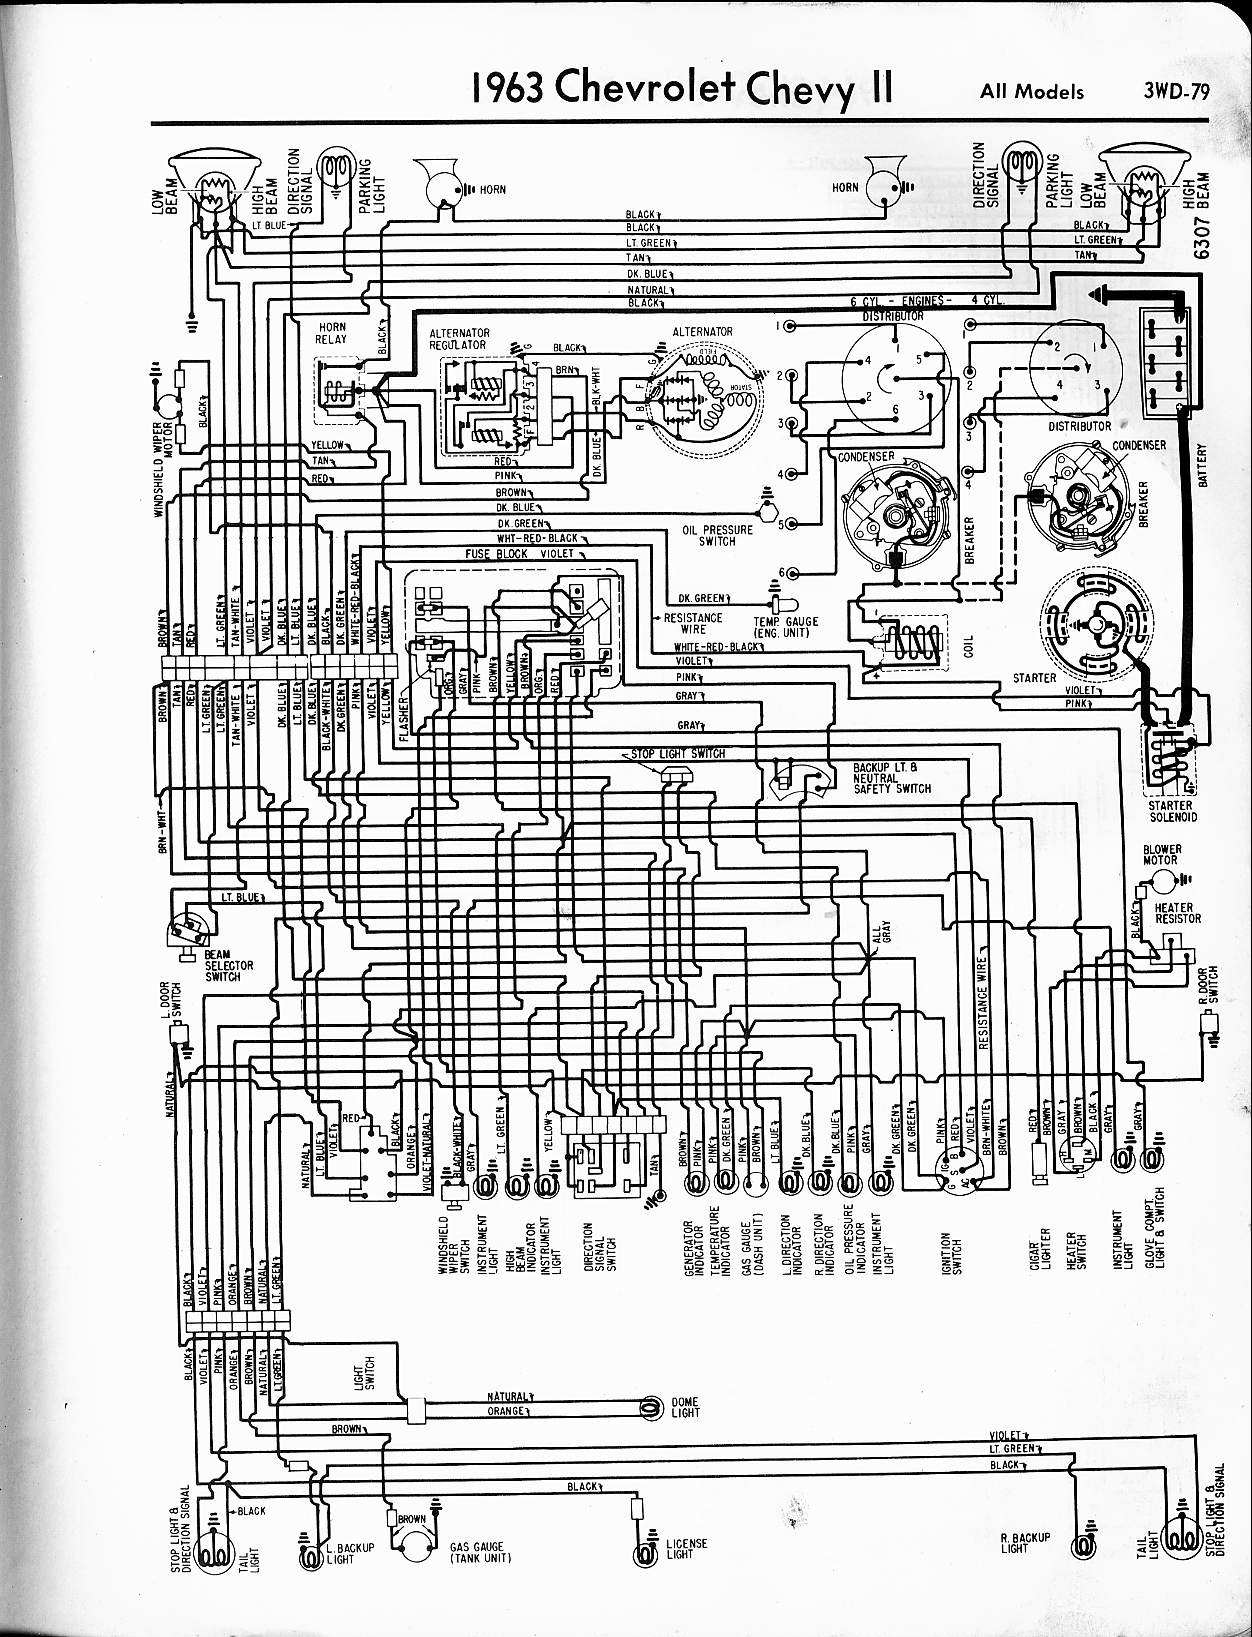 MWireChev63_3WD 079 57 65 chevy wiring diagrams 3 Wire Headlight Wiring Diagram at crackthecode.co